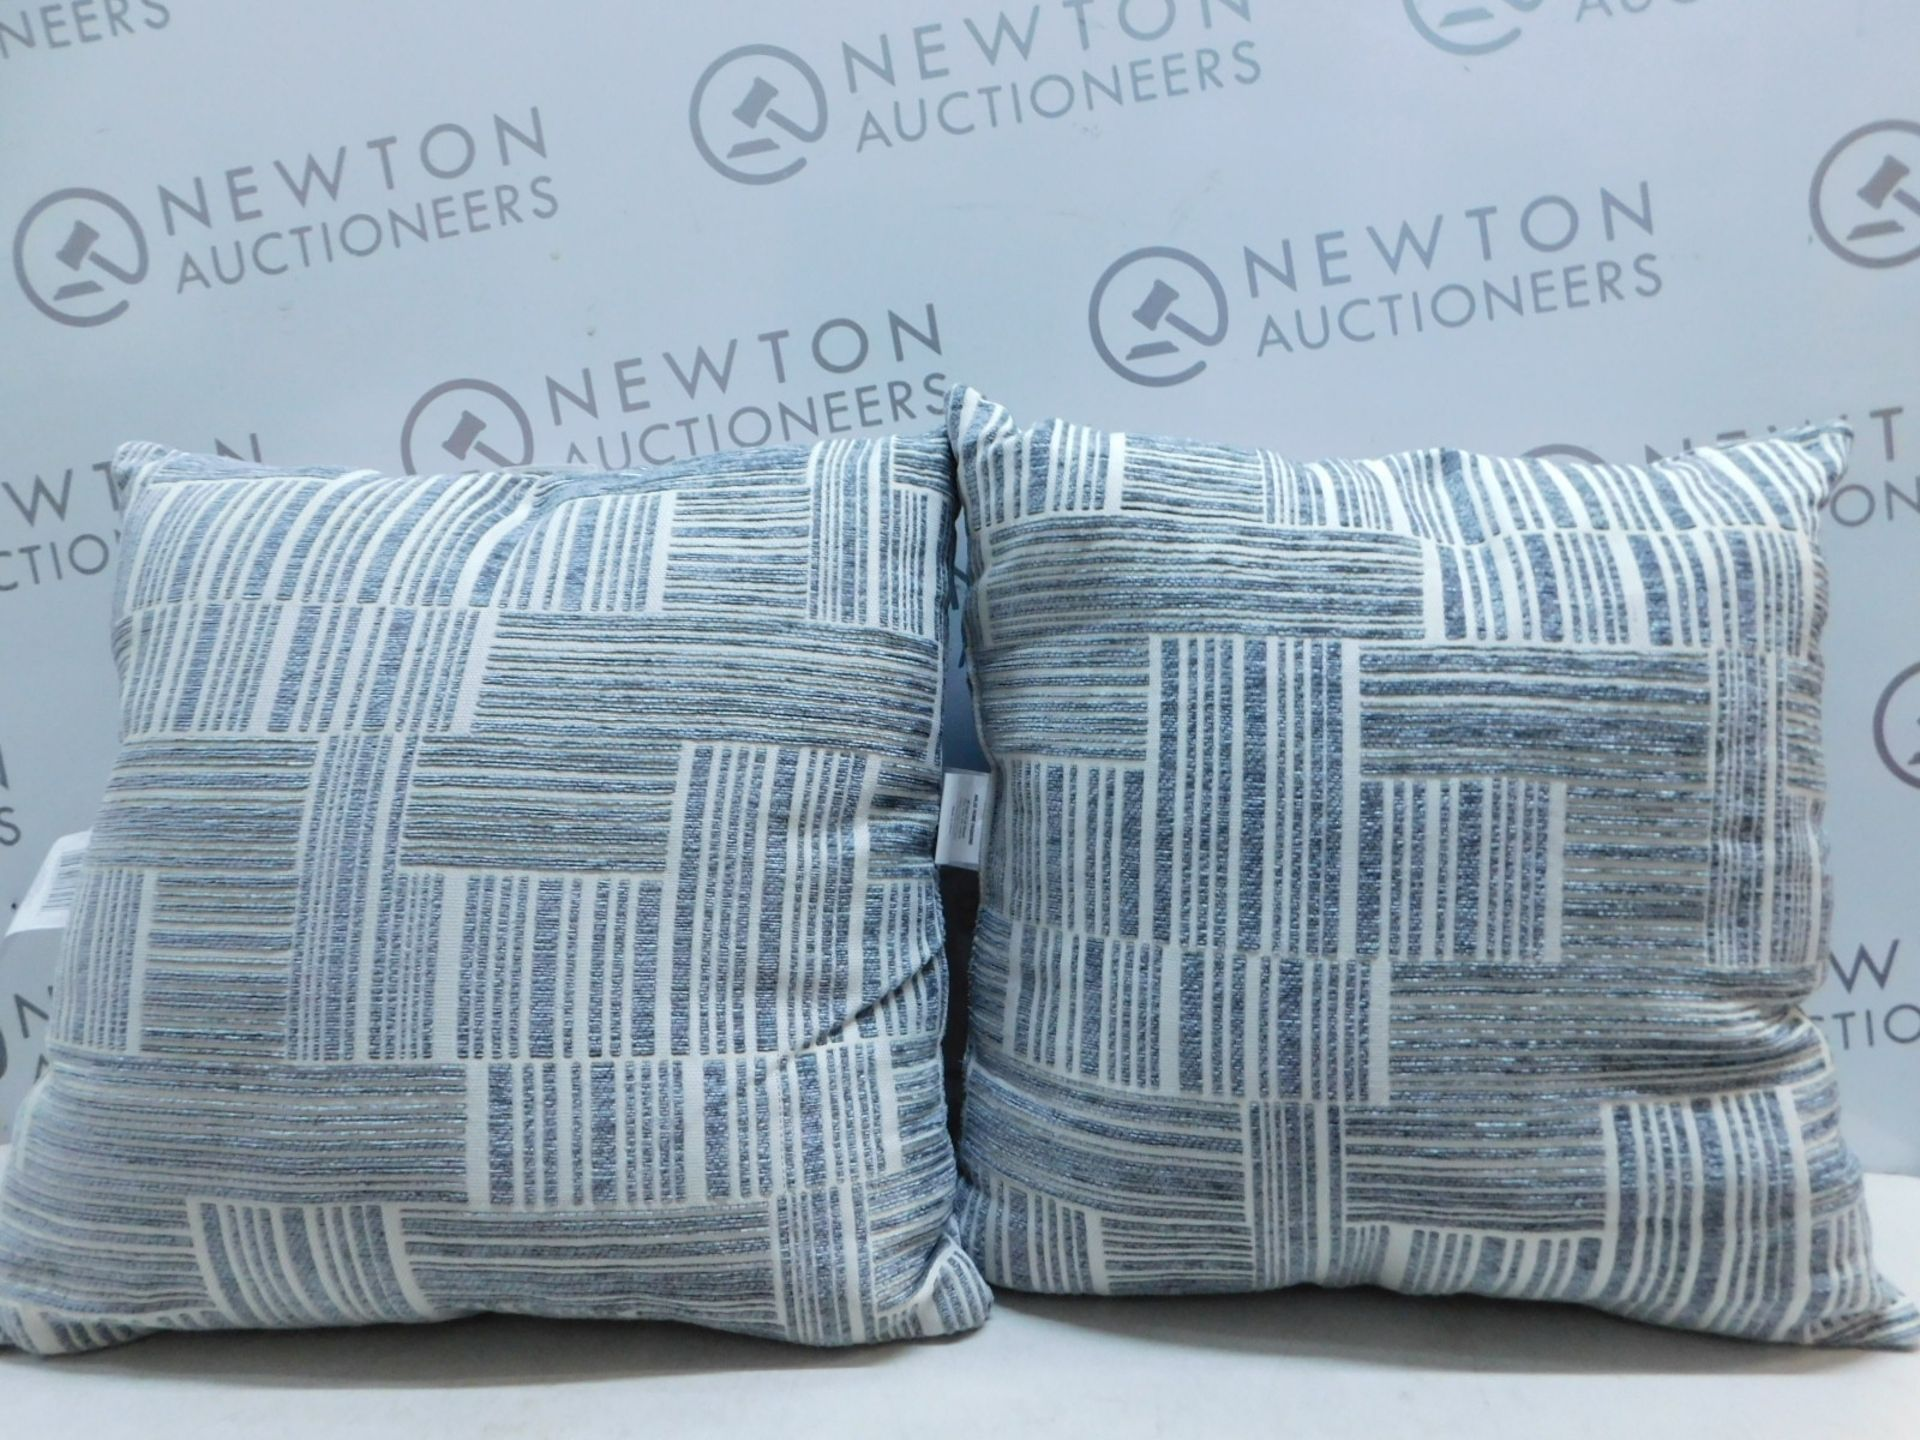 Lot 3 - 1 PAIR OF ARLEE HOME FASHION PATTERNED CUSHIONS RRP £39.99